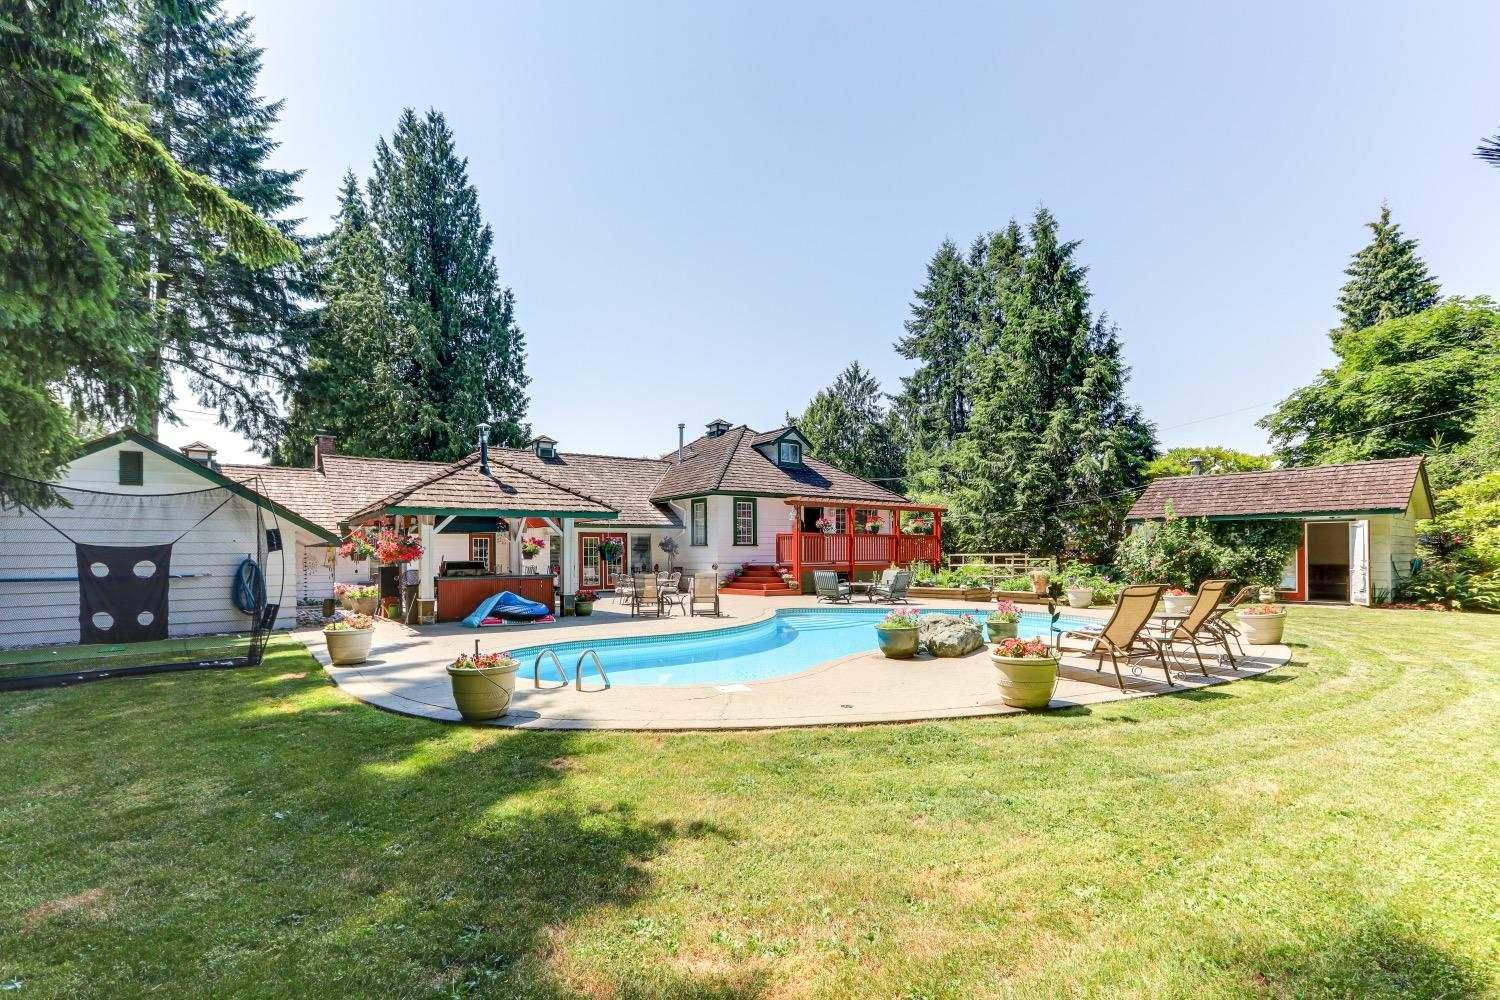 Main Photo: 21437 River Road in Maple Ridge: West Central House for sale : MLS®# R2598288